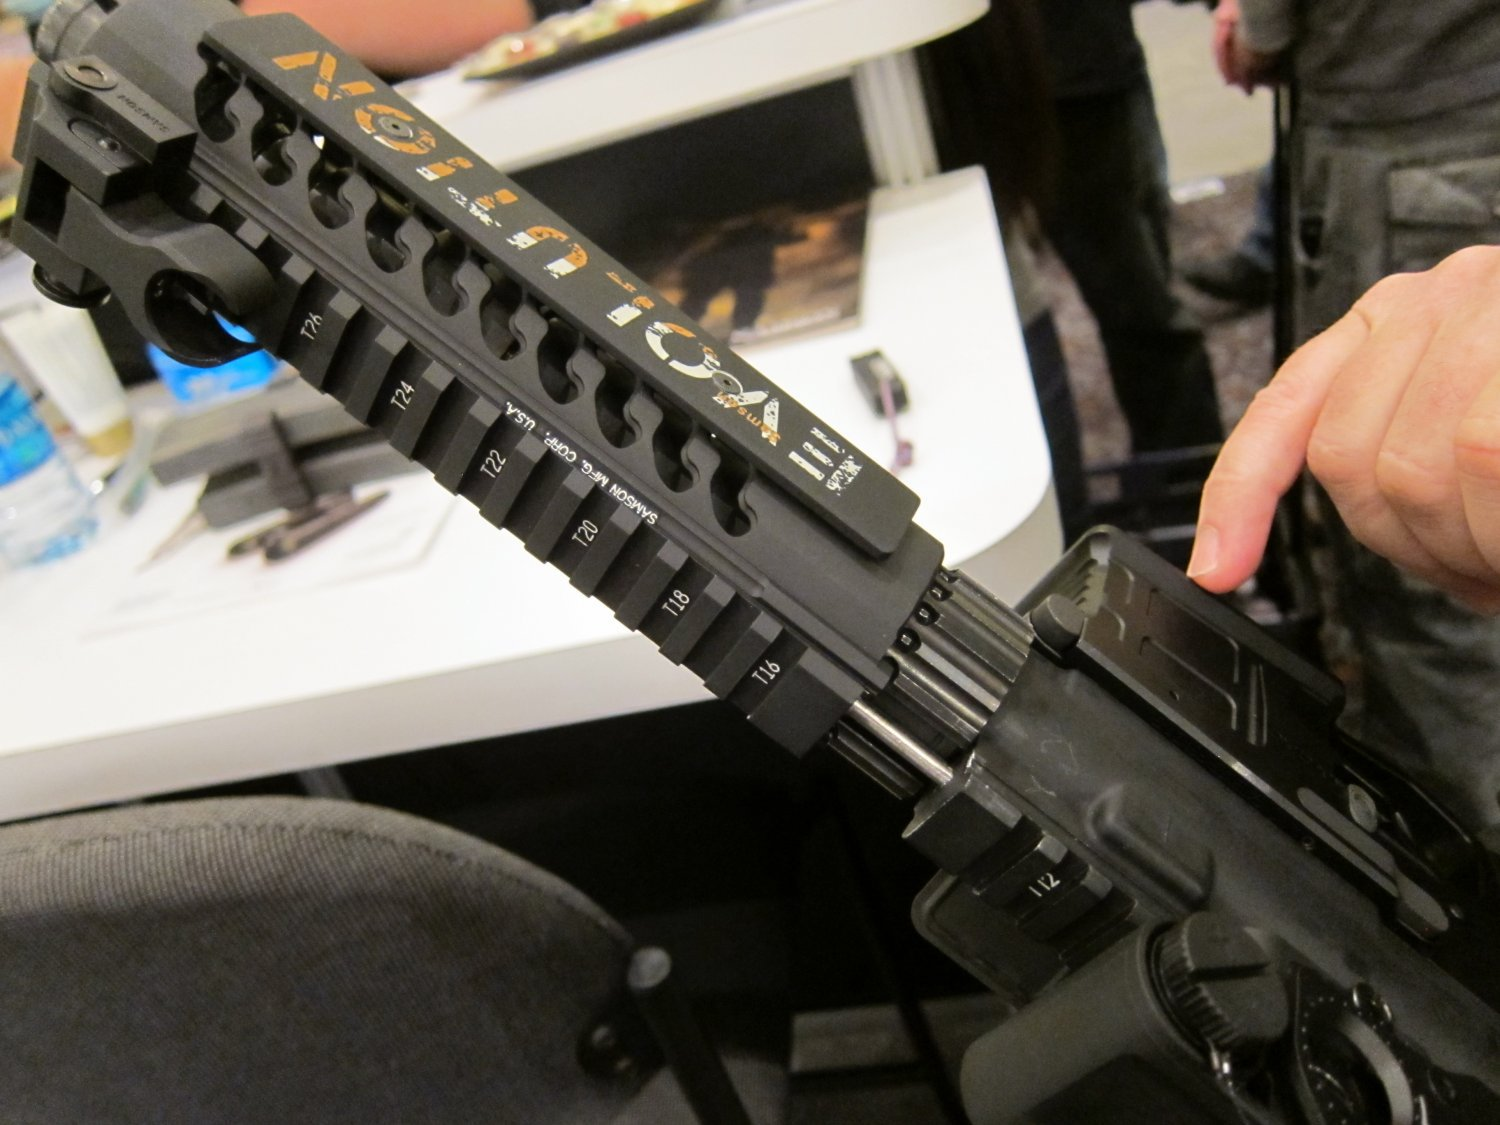 "Samson Evolution Series Rail System SHOT SHOW 2011 8 <!  :en  >Samson Evolution Series Rail System Outfitted Adams Arms 7.5"" PDW Piston AR SBR for Dynamic Close Quarters Battle (CQB) and Tactical Training: DARC Ready!<!  :  >"